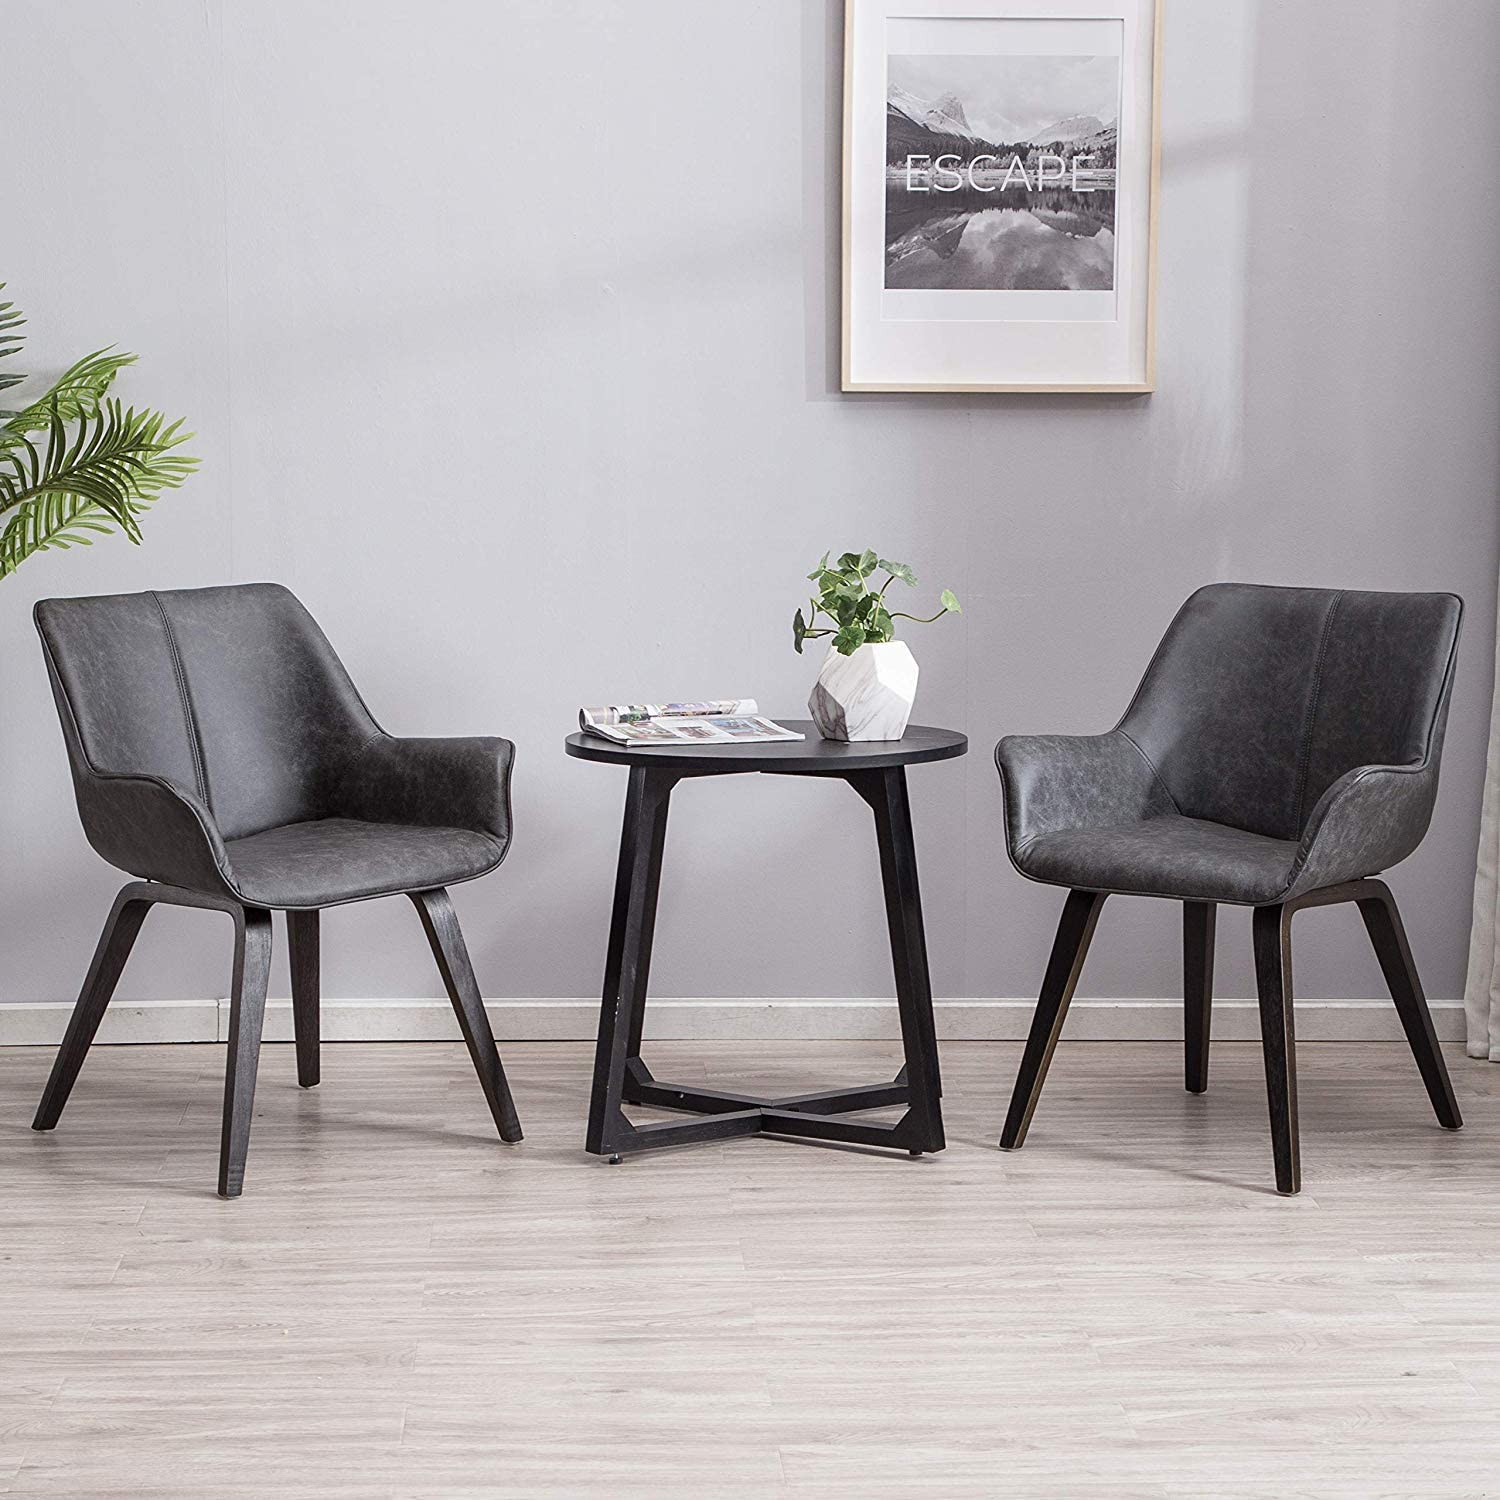 gray-upholstered-dining-chairs-with-armrests-neutral-themed-faux-leather-upholstery-bentwood-legs-set-of-two-modern-seats-for-dining-room